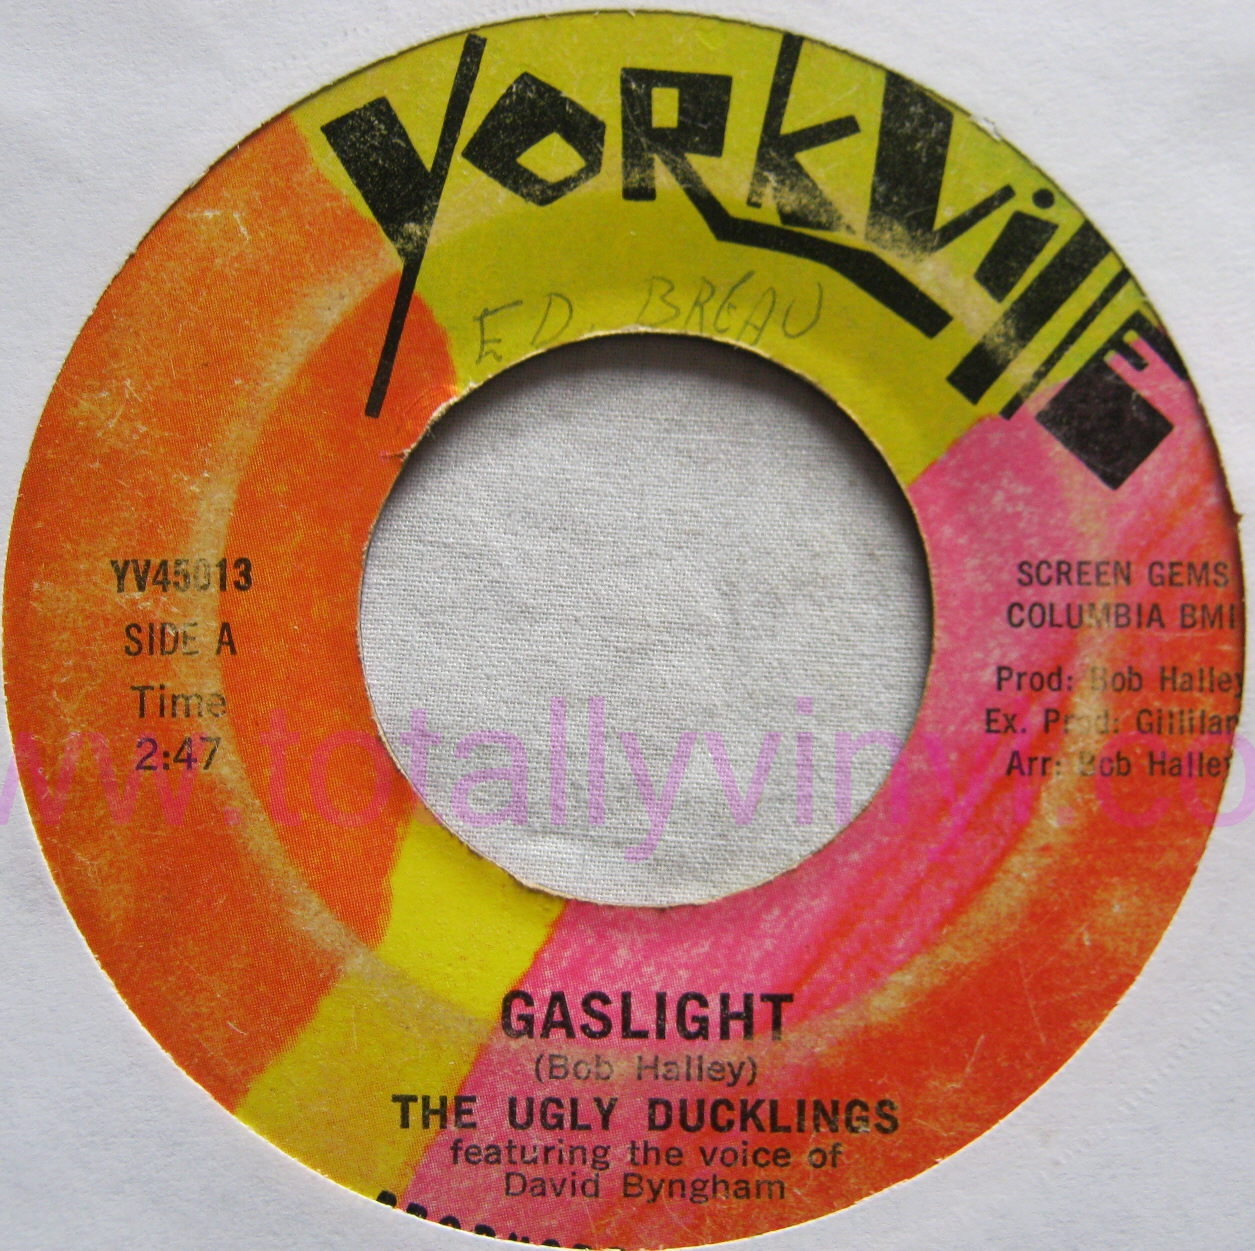 Totally Vinyl Records Ugly Ducklings The Gaslight 7